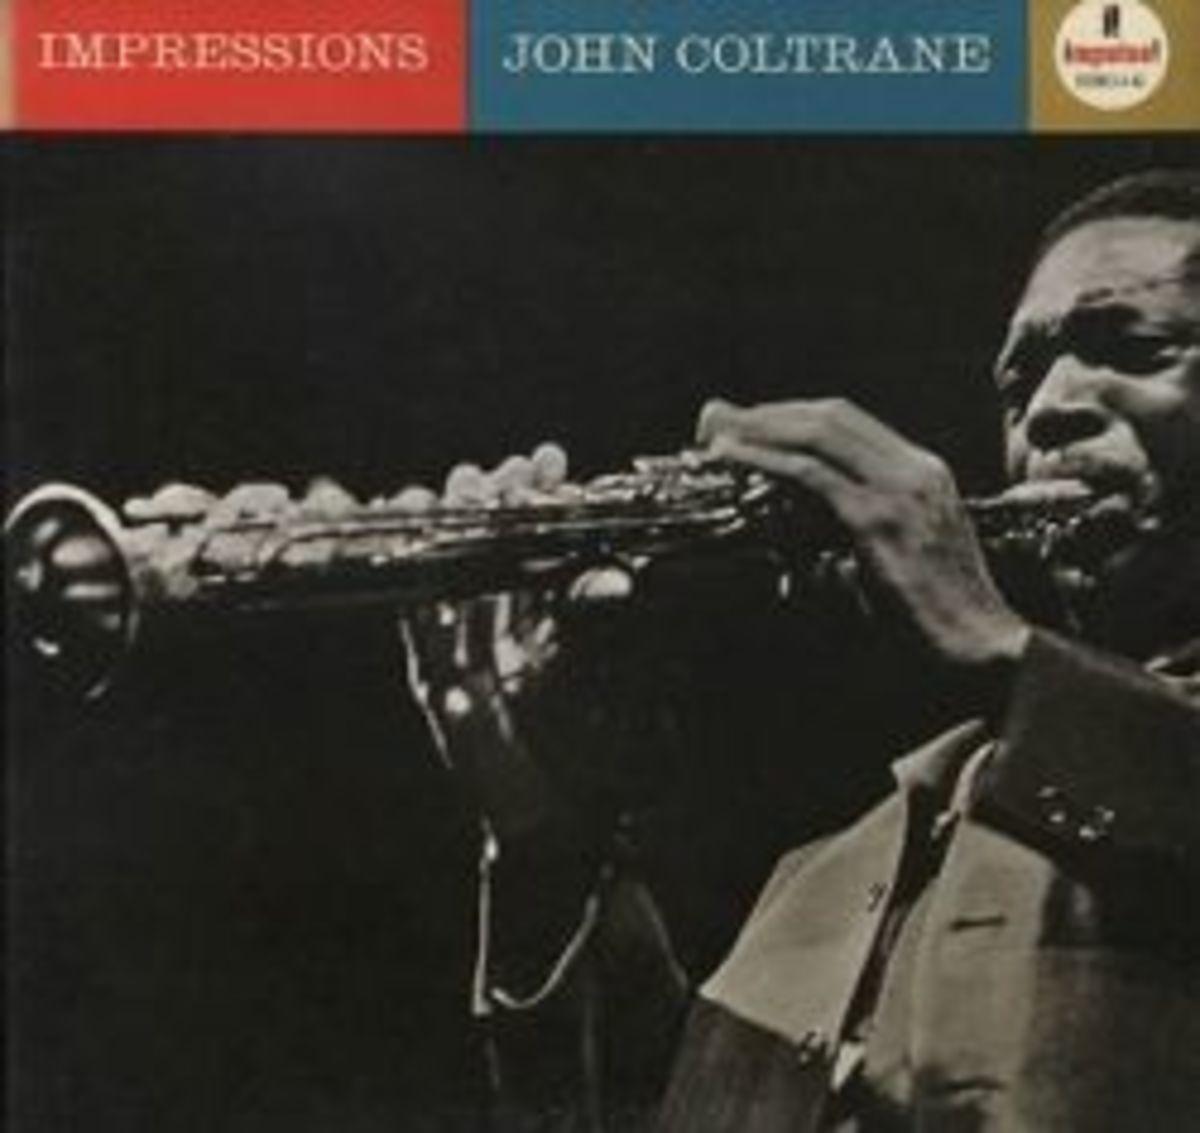 "John Coltrane ""Impressions"" Impulse Records A-42 12"" LP Vinyl Record"